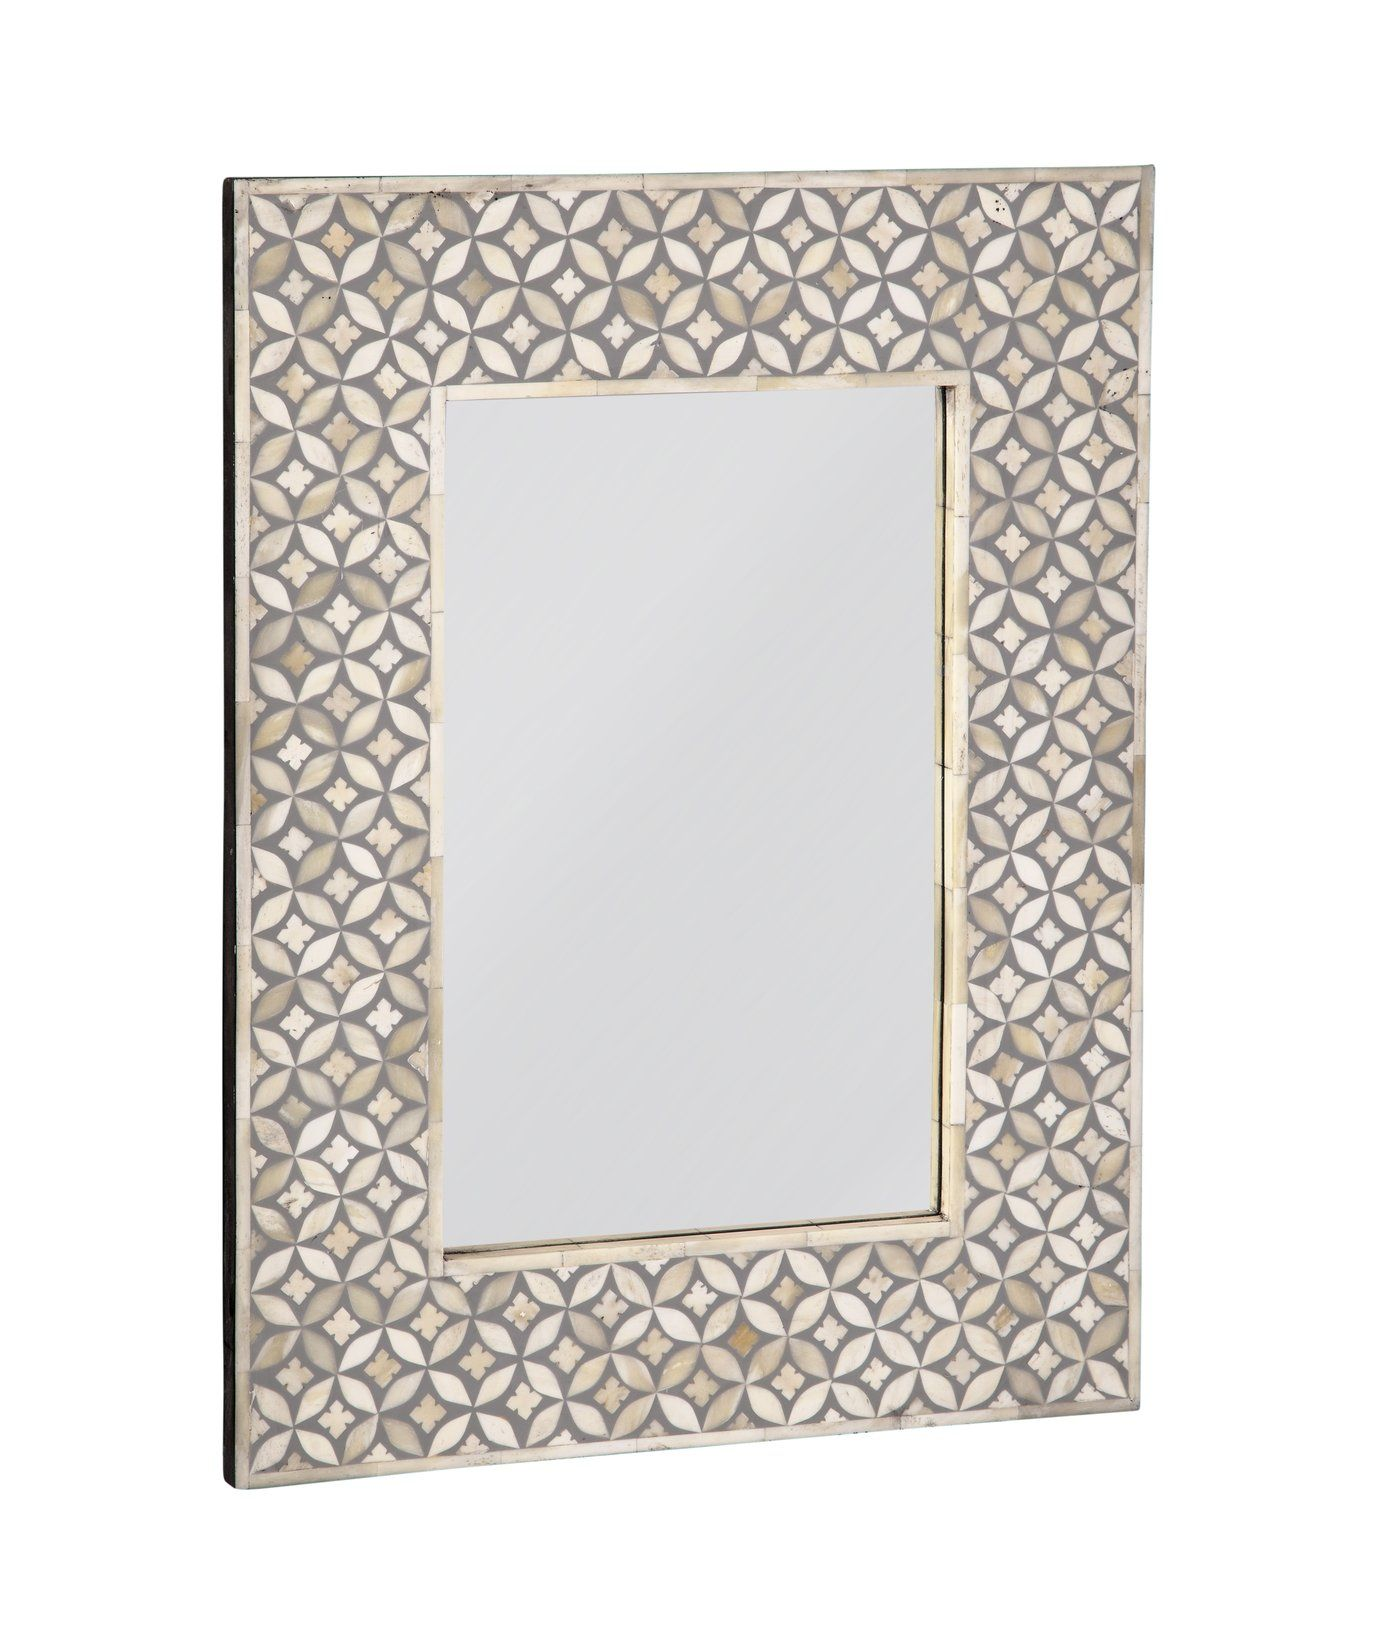 Wooden Lily And Bone Mirror Frame Gray White In 2020 Bone Inlay Mirror Mirror Frames